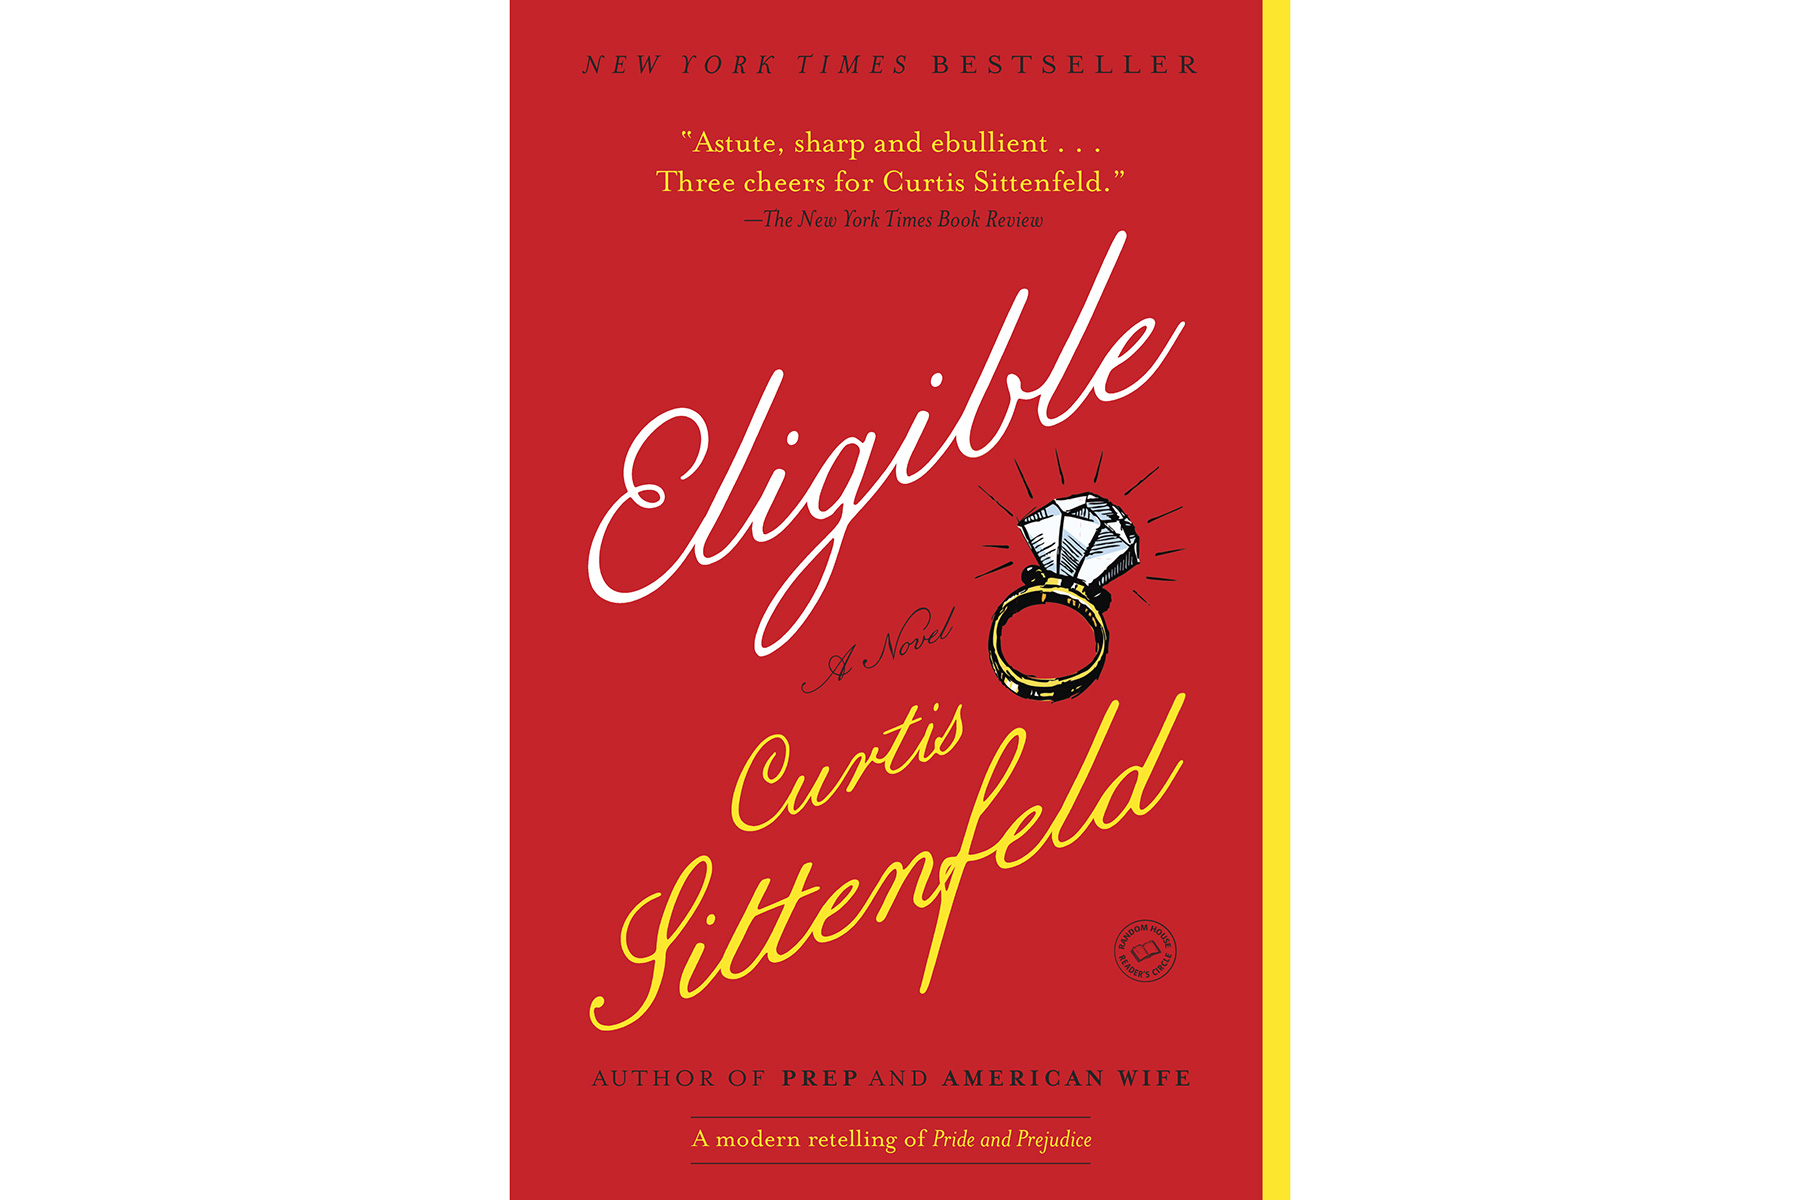 Eligible, by Curtis Sittenfeld